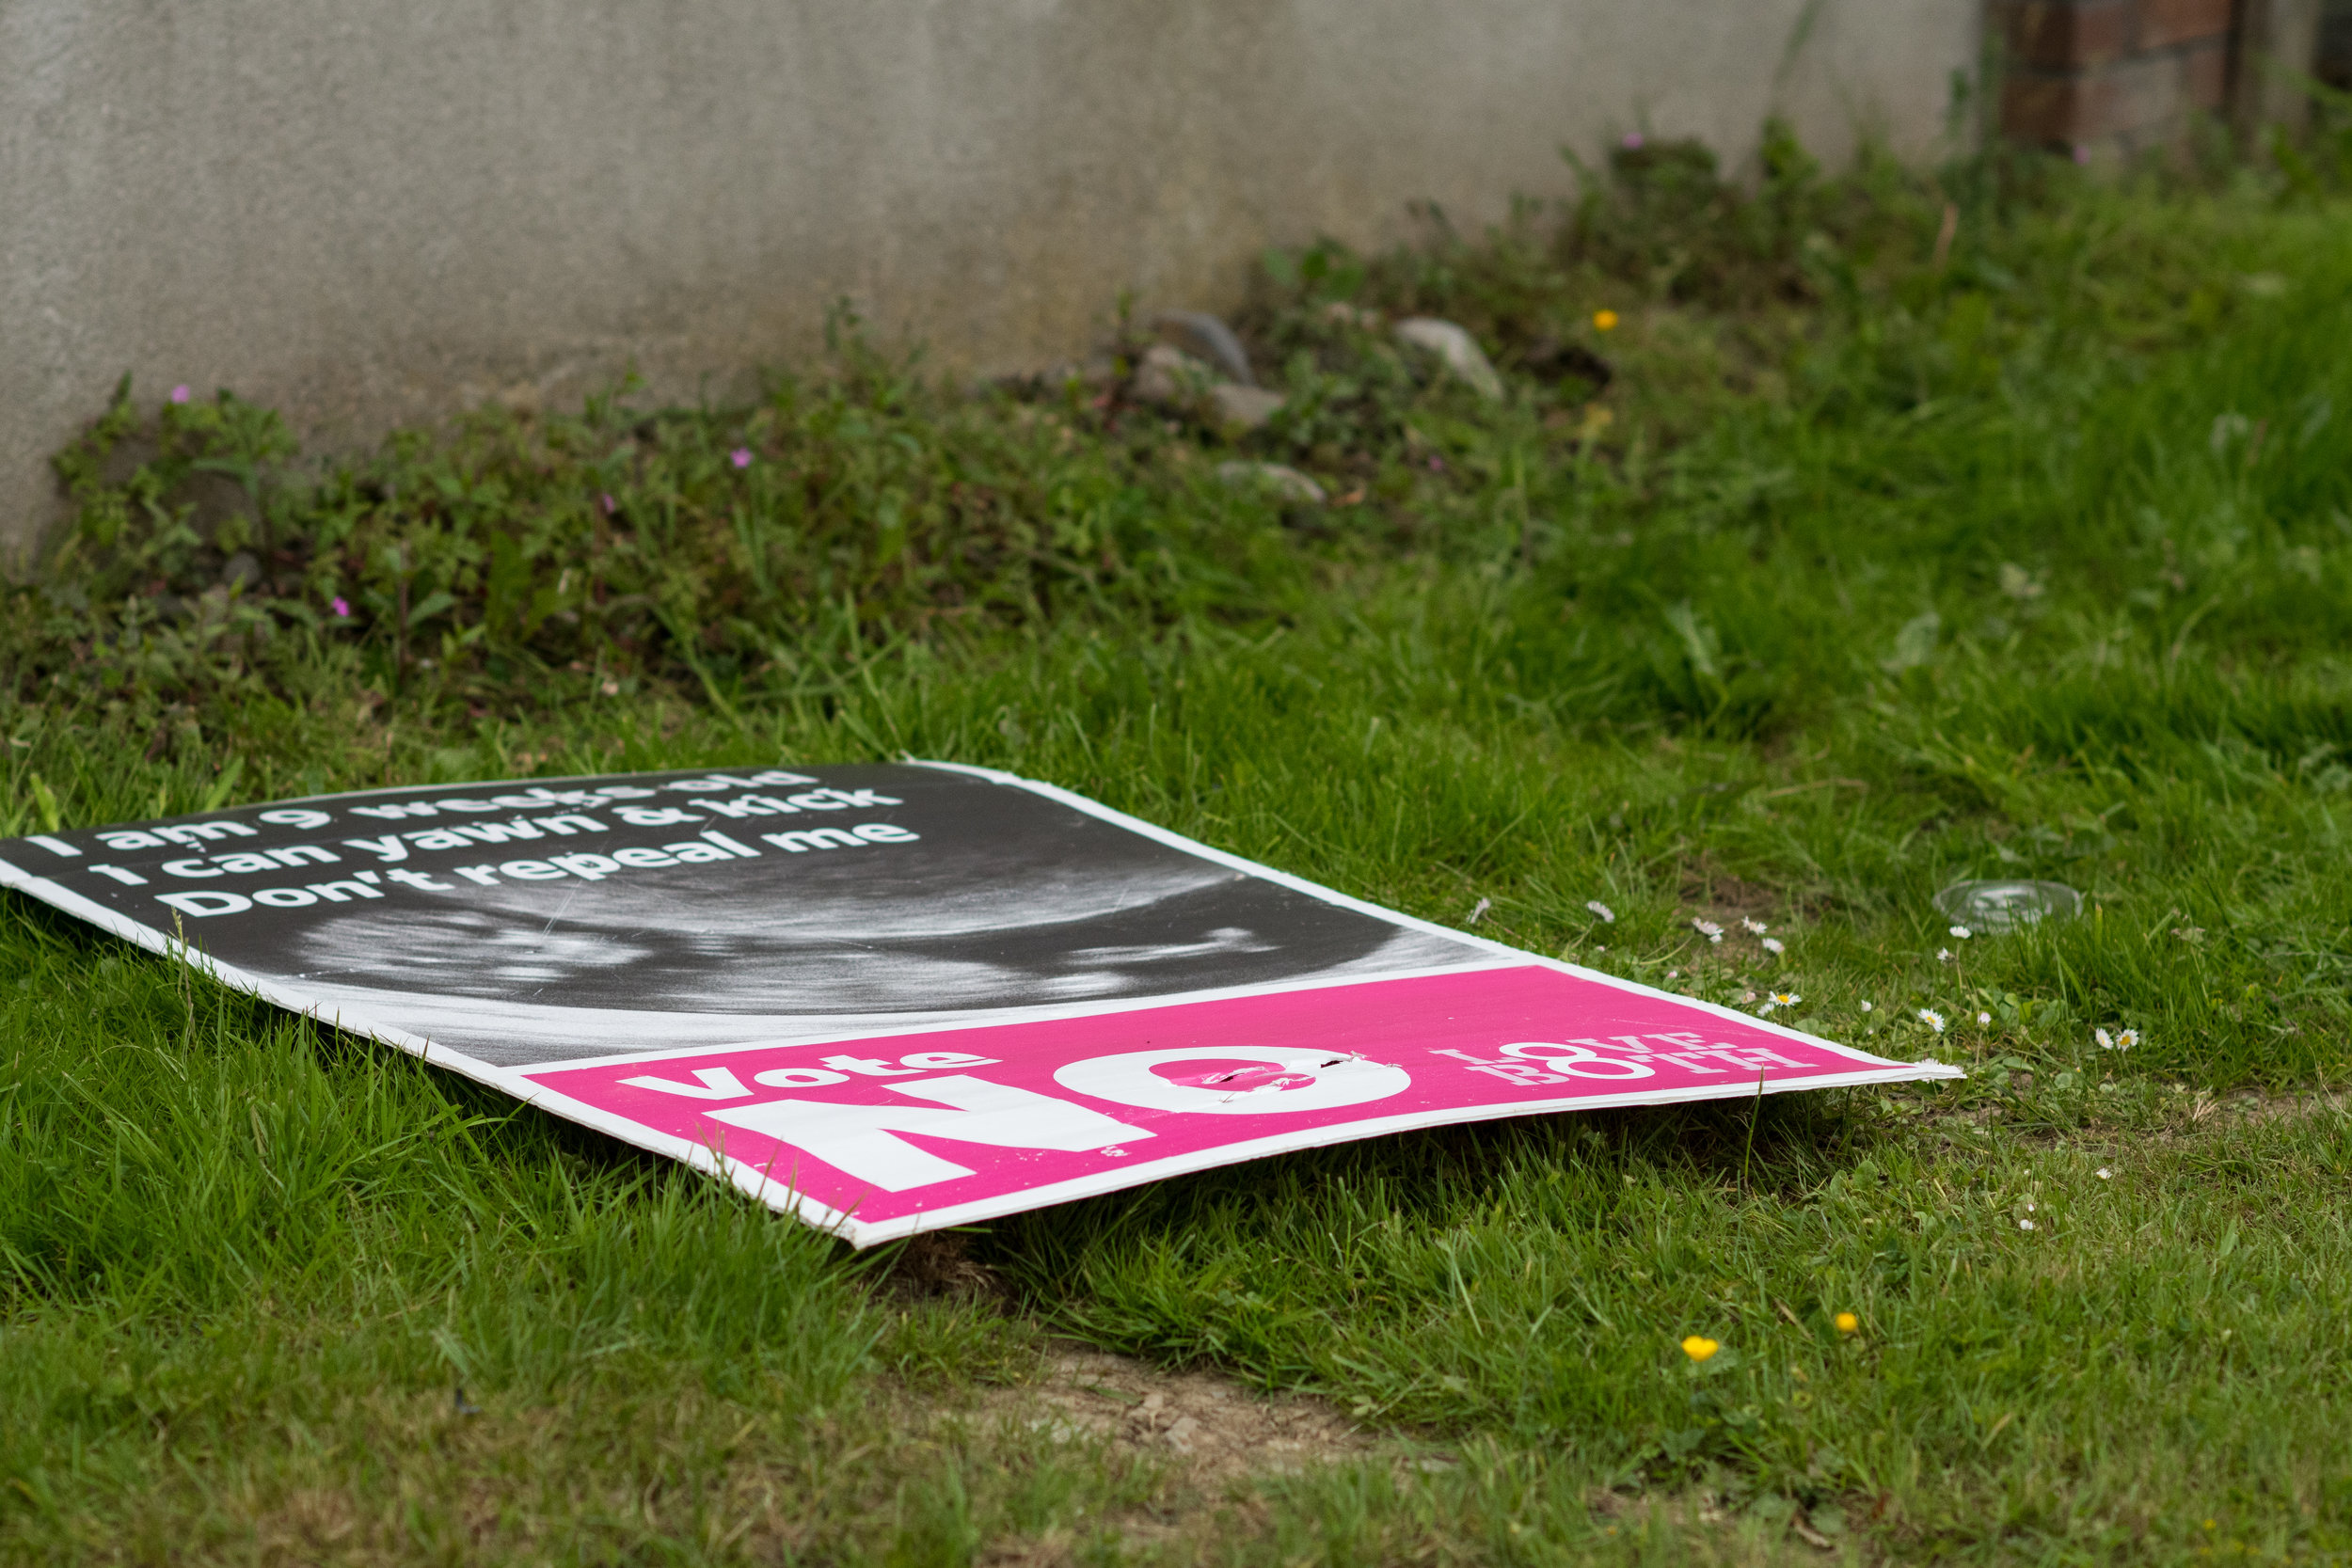 no-campaign-poster-ripped-down.jpg